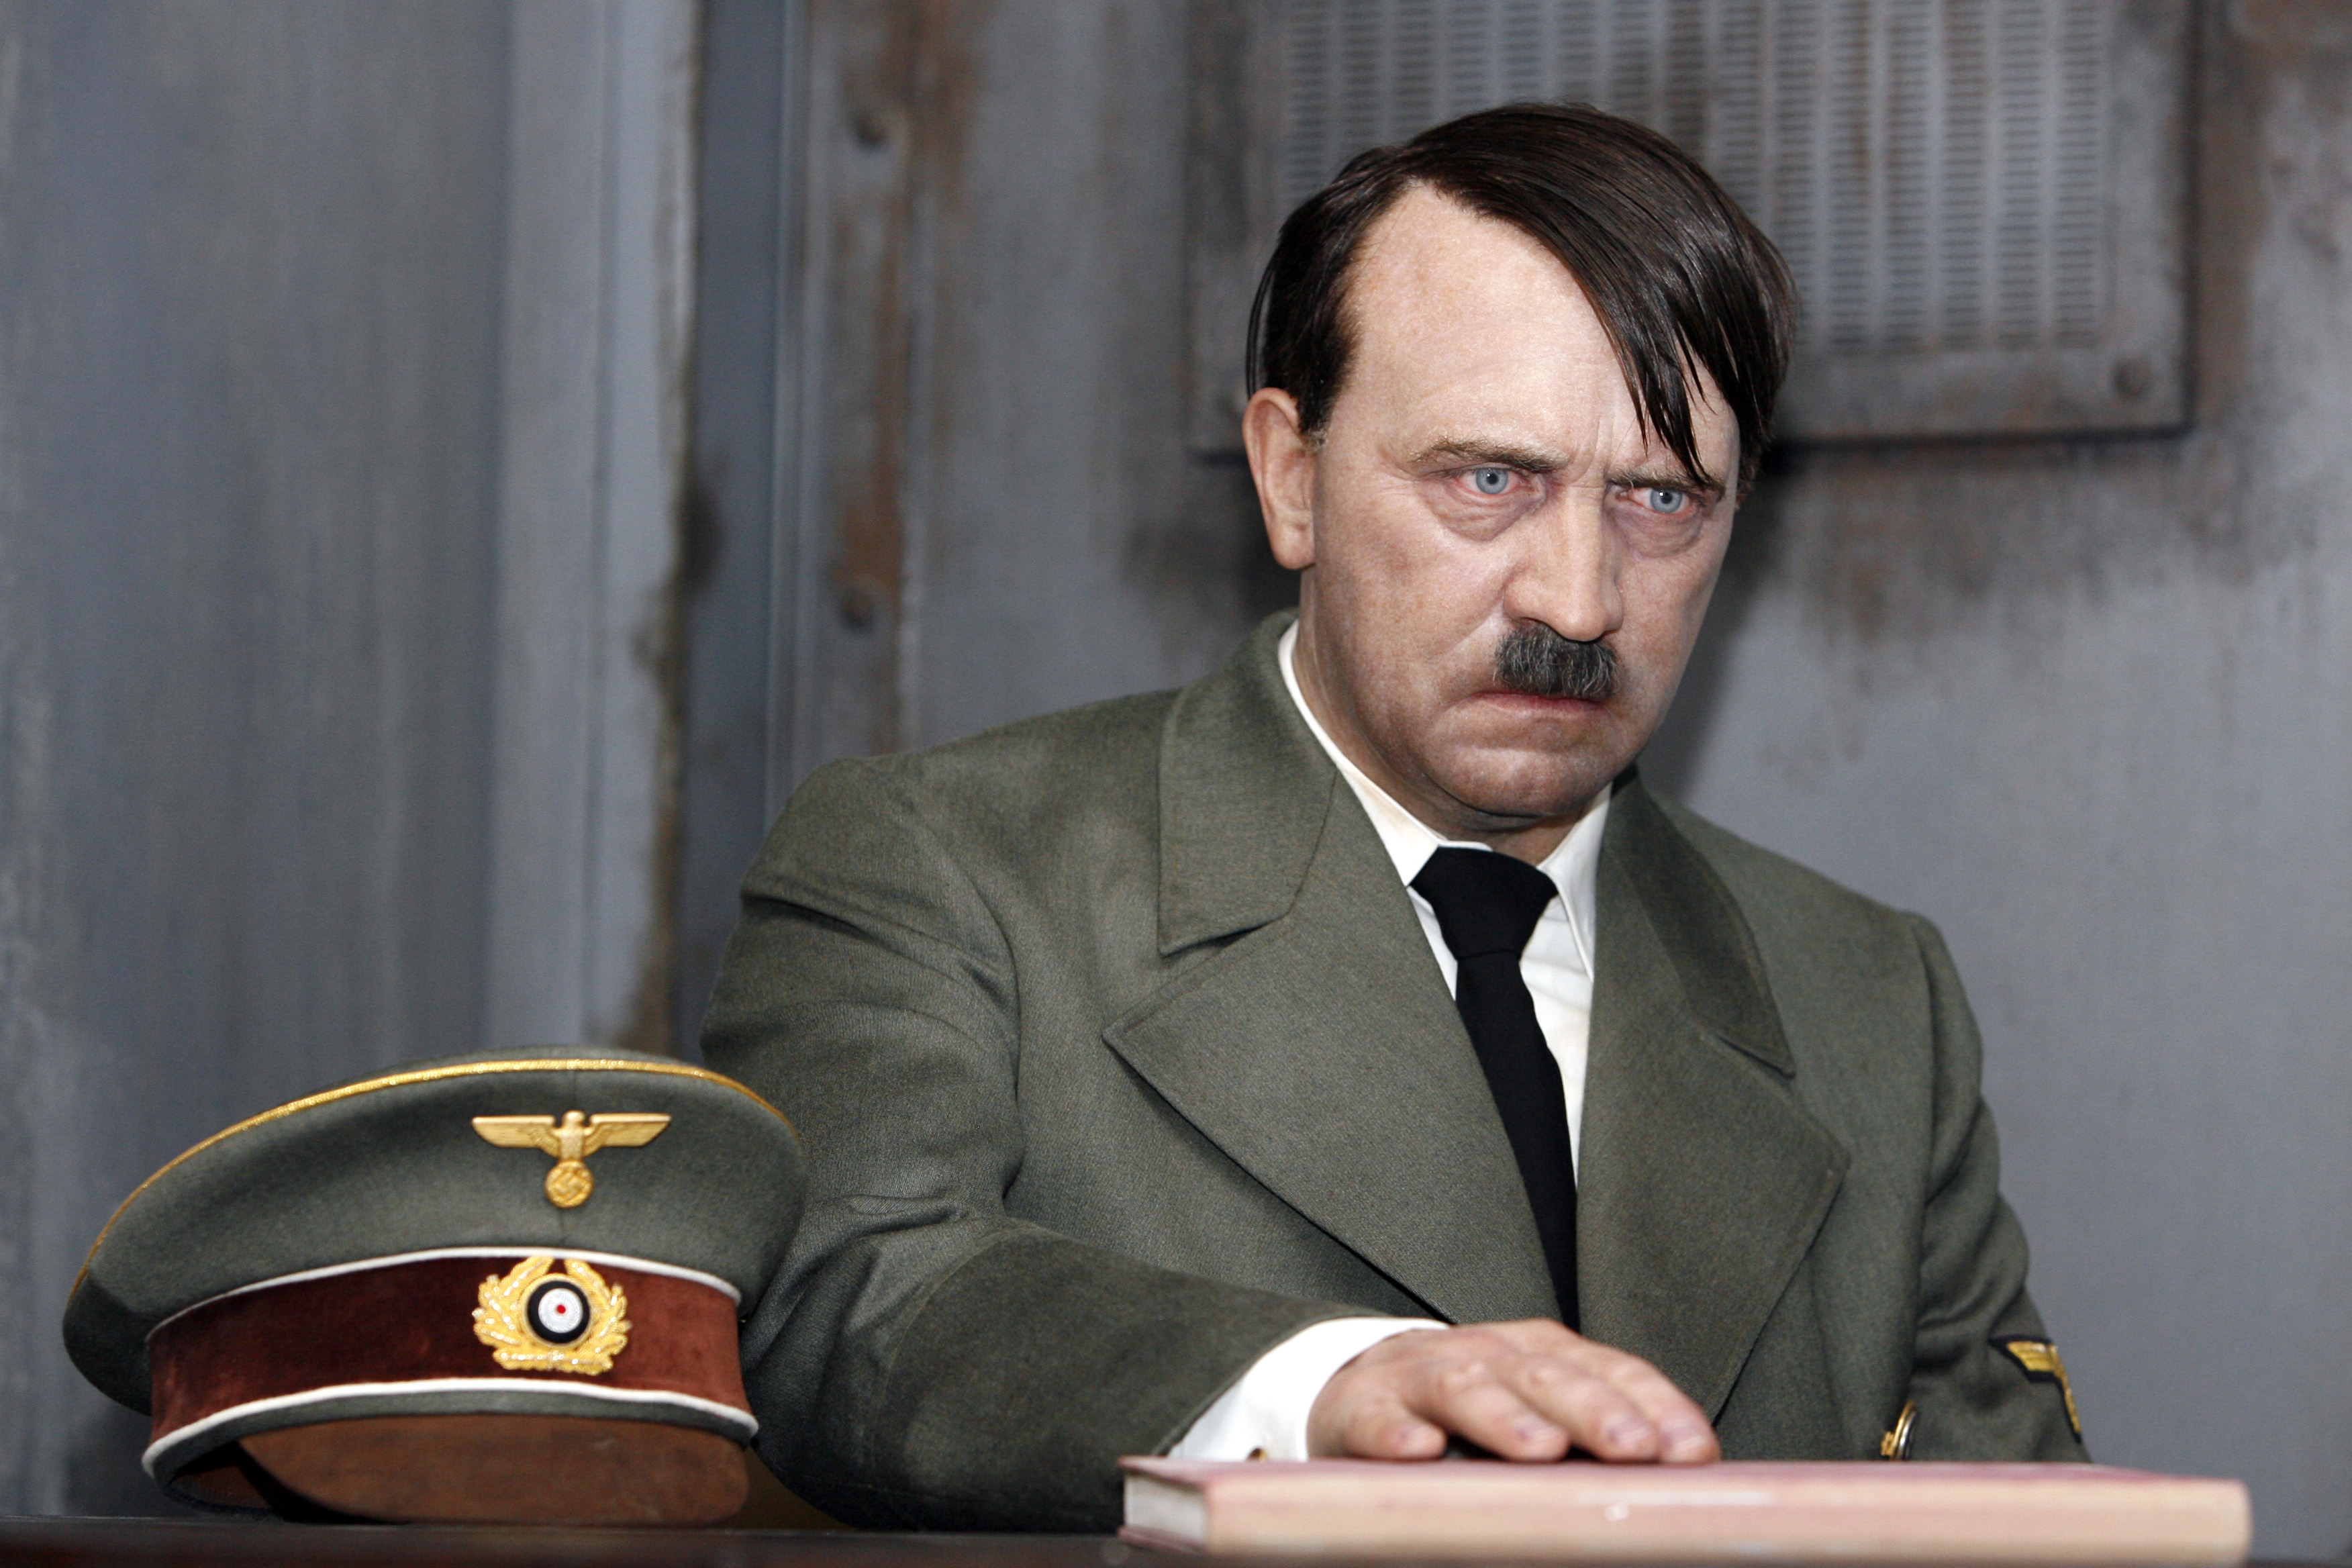 Escaping notice: A wax figure of Nazi dictator Adolf Hitler is displayed at Madame Tussauds prior to the exhibition's July 2008 public opening in Berlin | BLOOMBERG